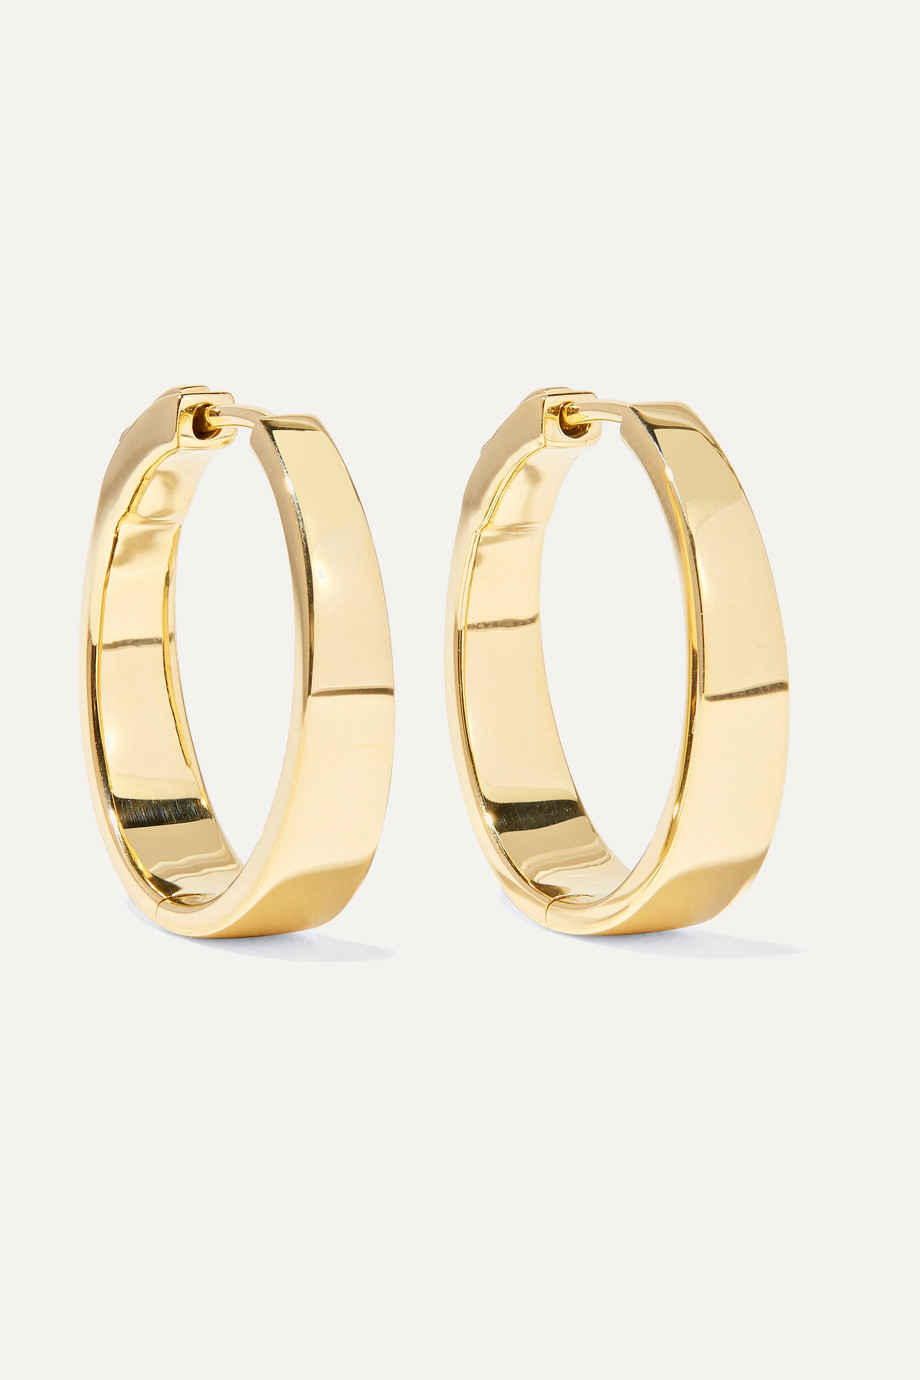 Anita Ko Meryl 18-karat gold hoop earrings